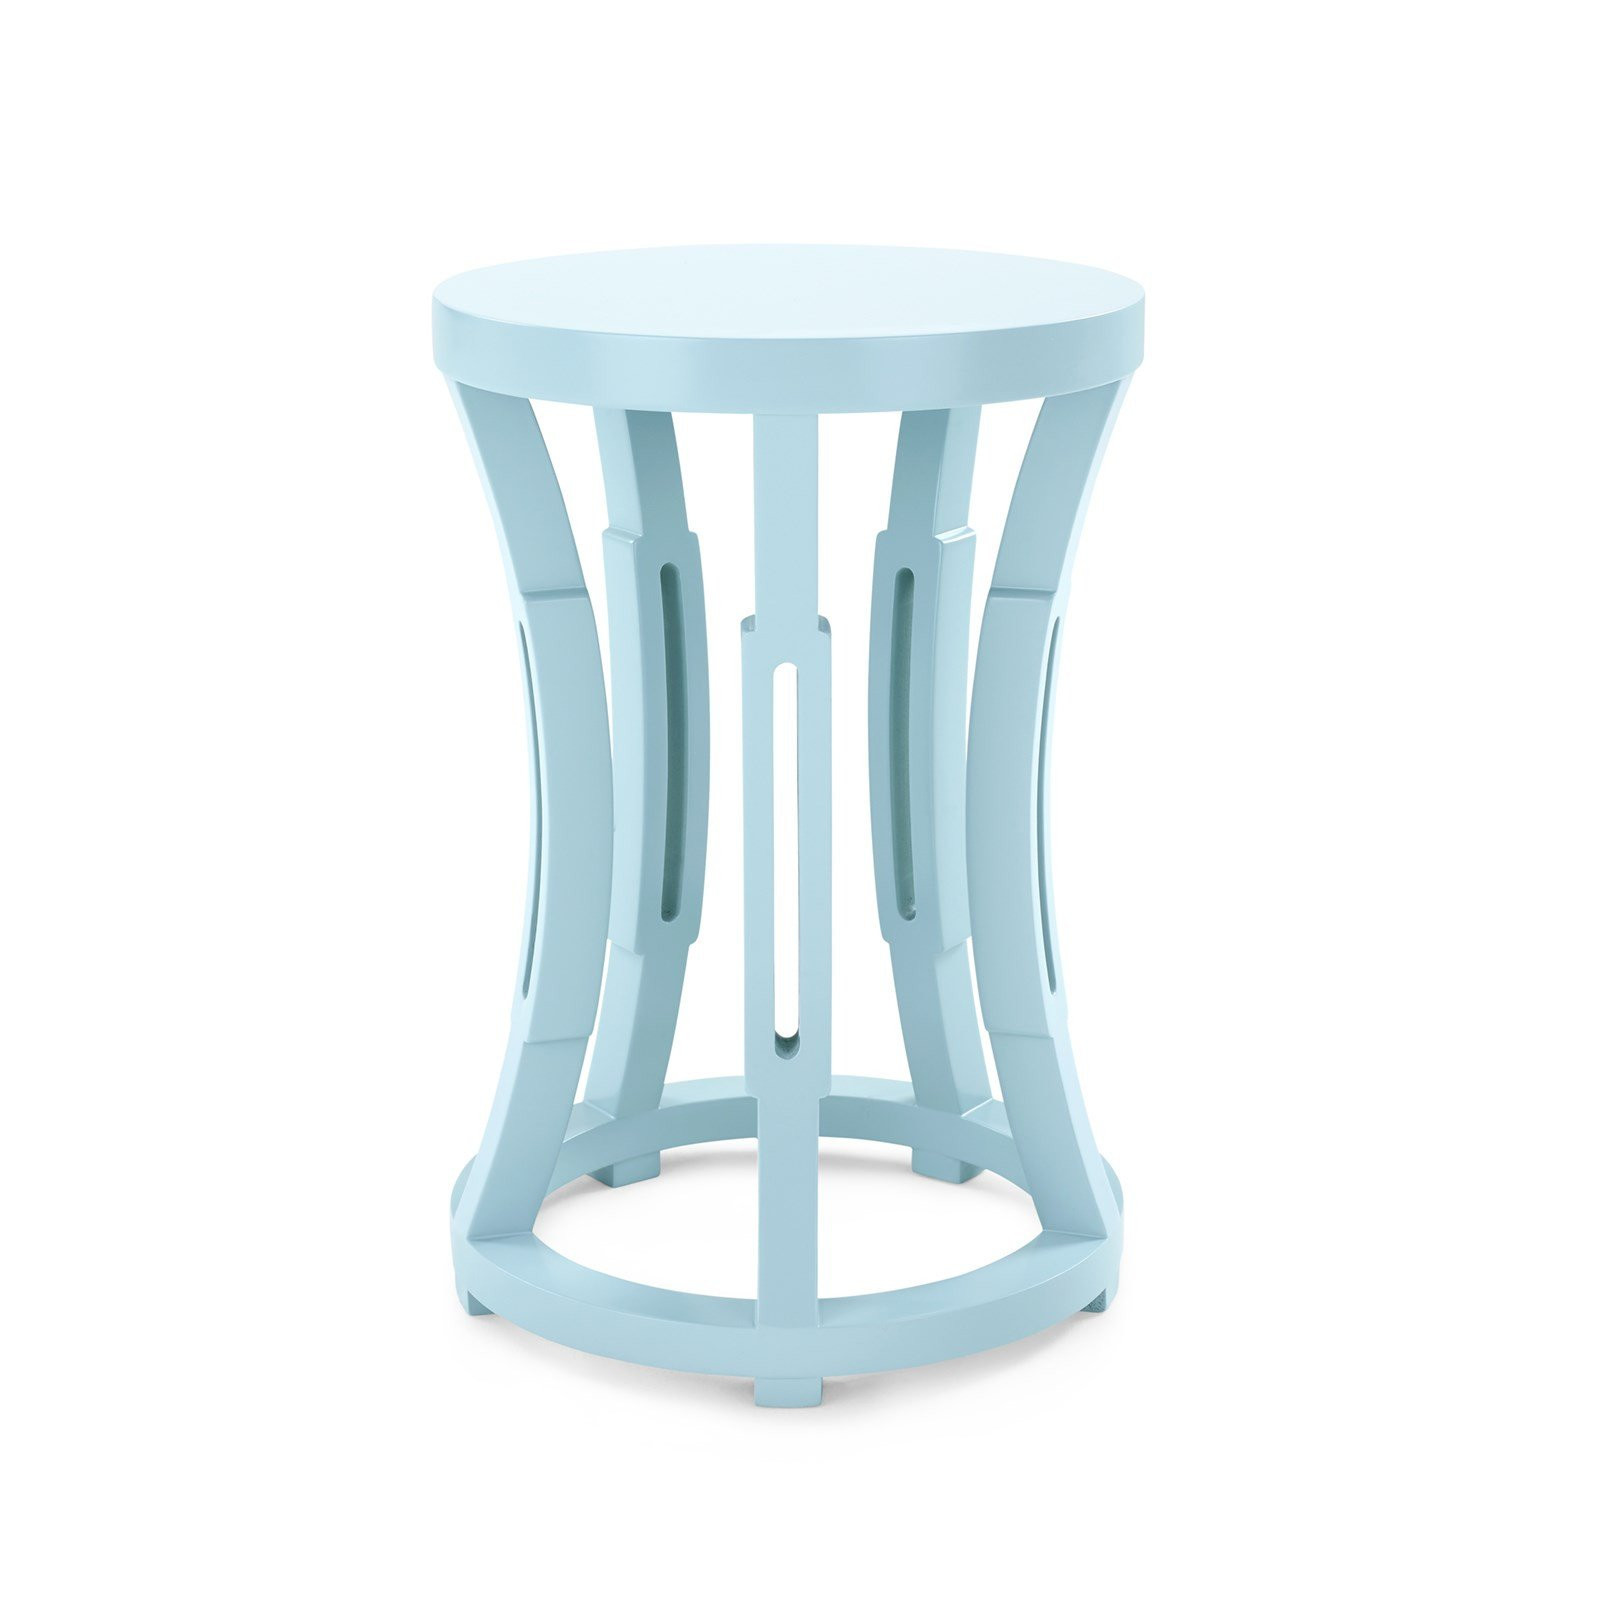 hourglass end table rivet modern marble top and collection accent powder blue products threshold west elm mid century desk inexpensive round tablecloths furniture lighting